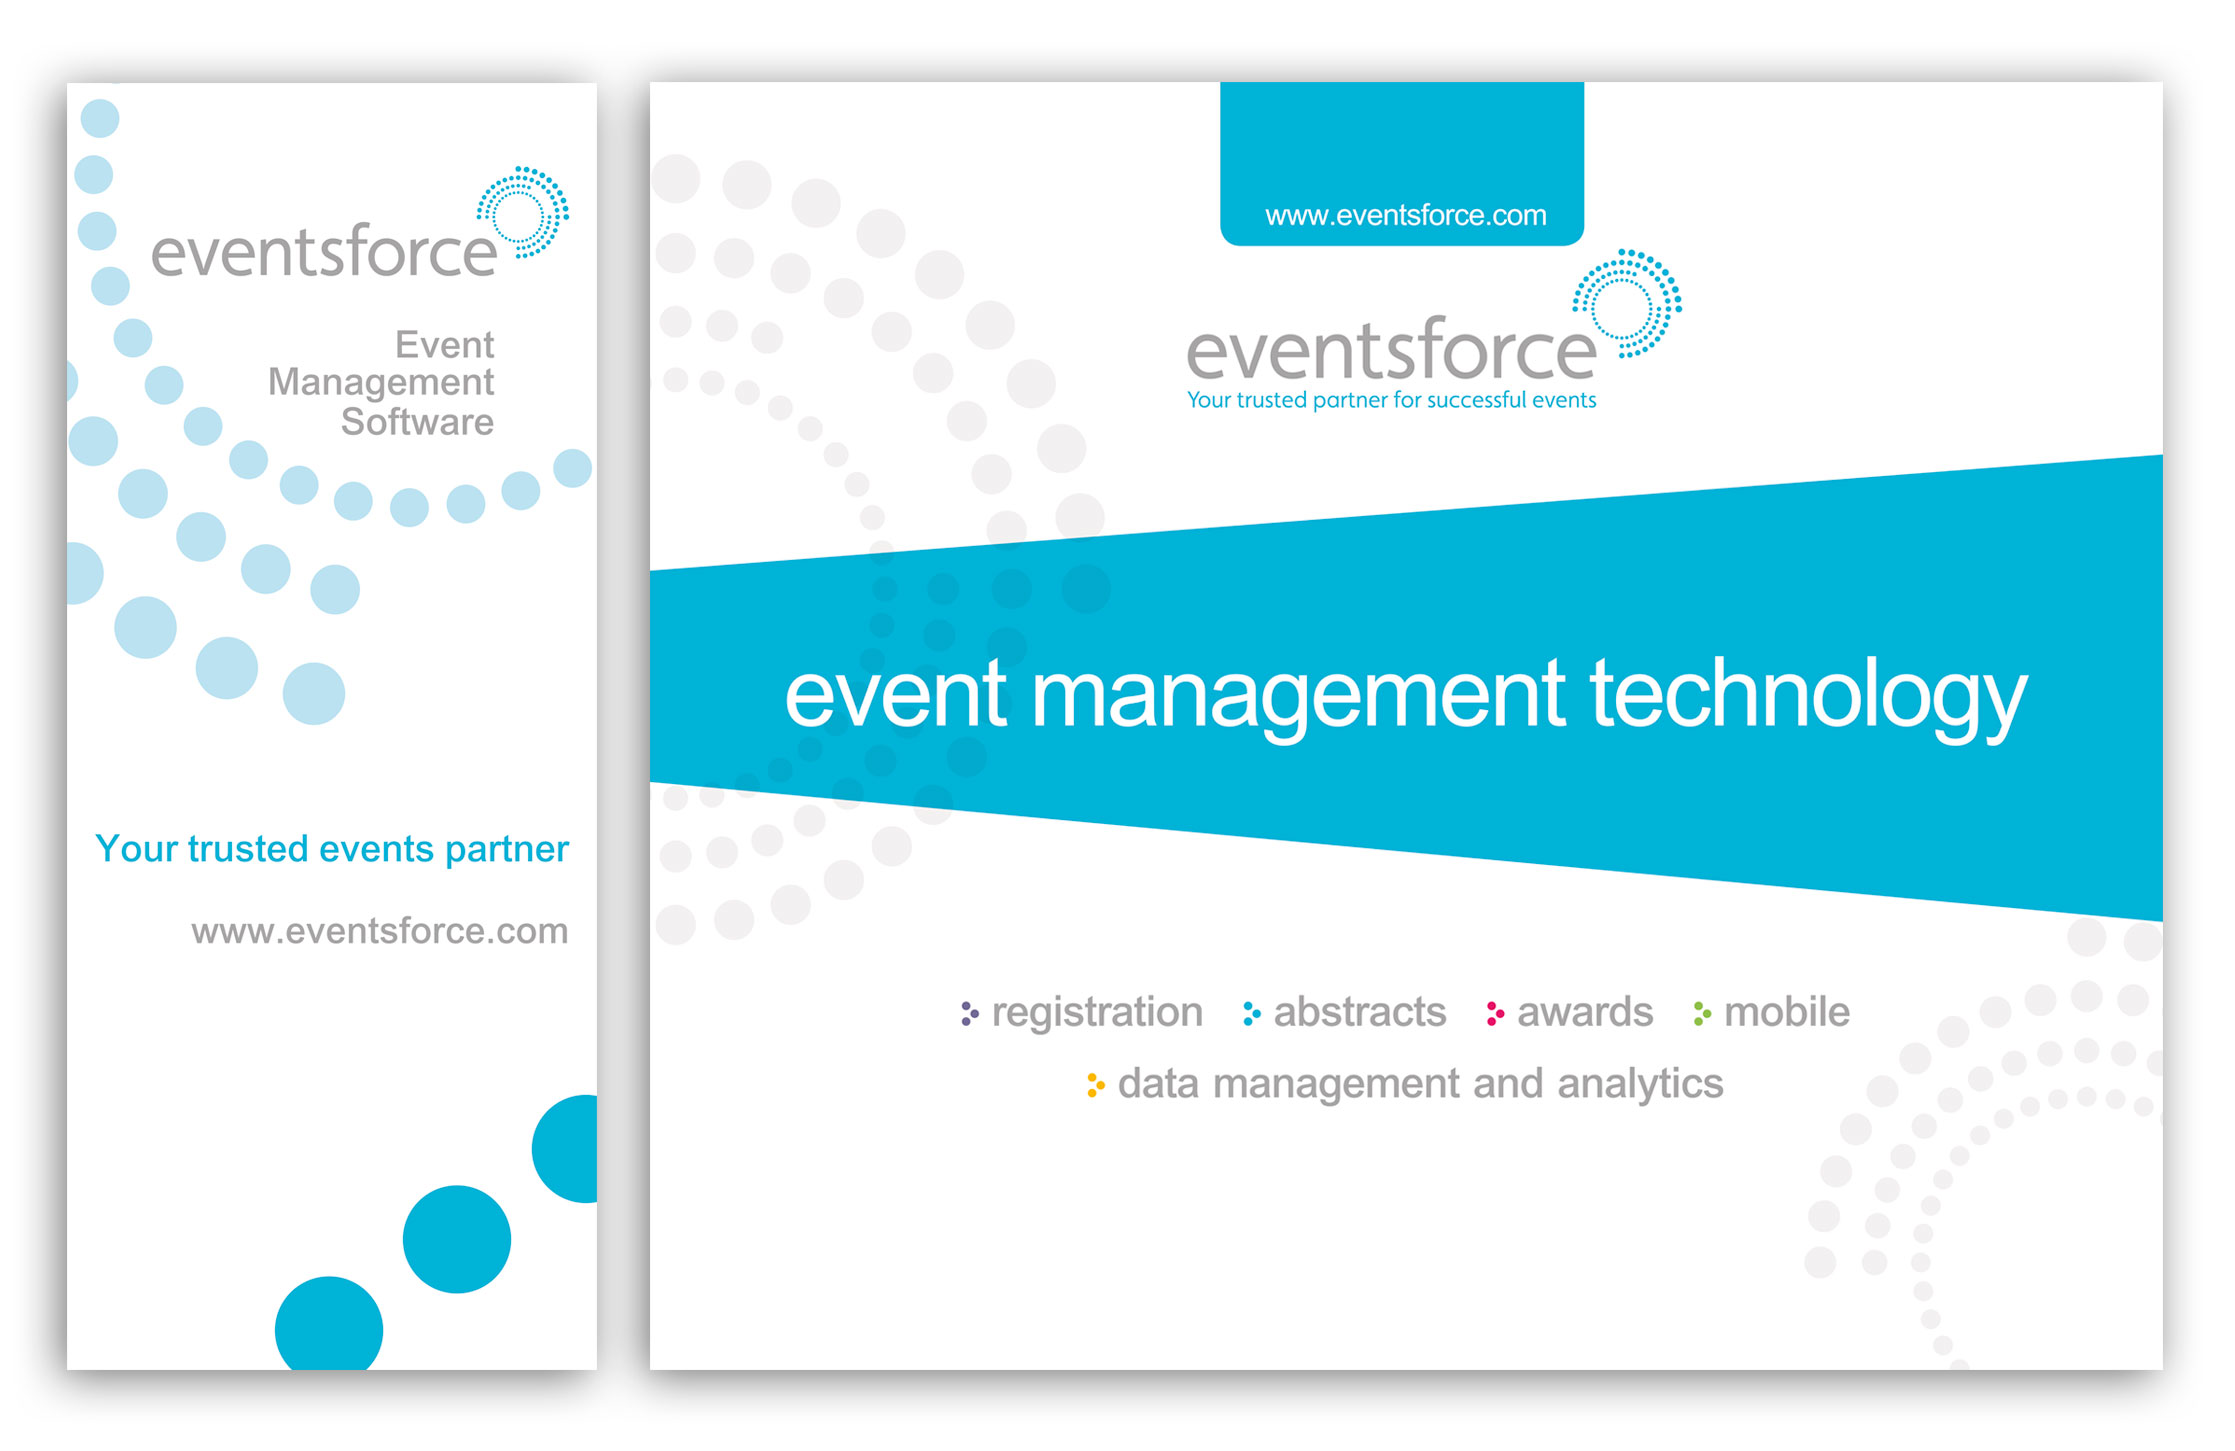 Eventsforce pop-up banner